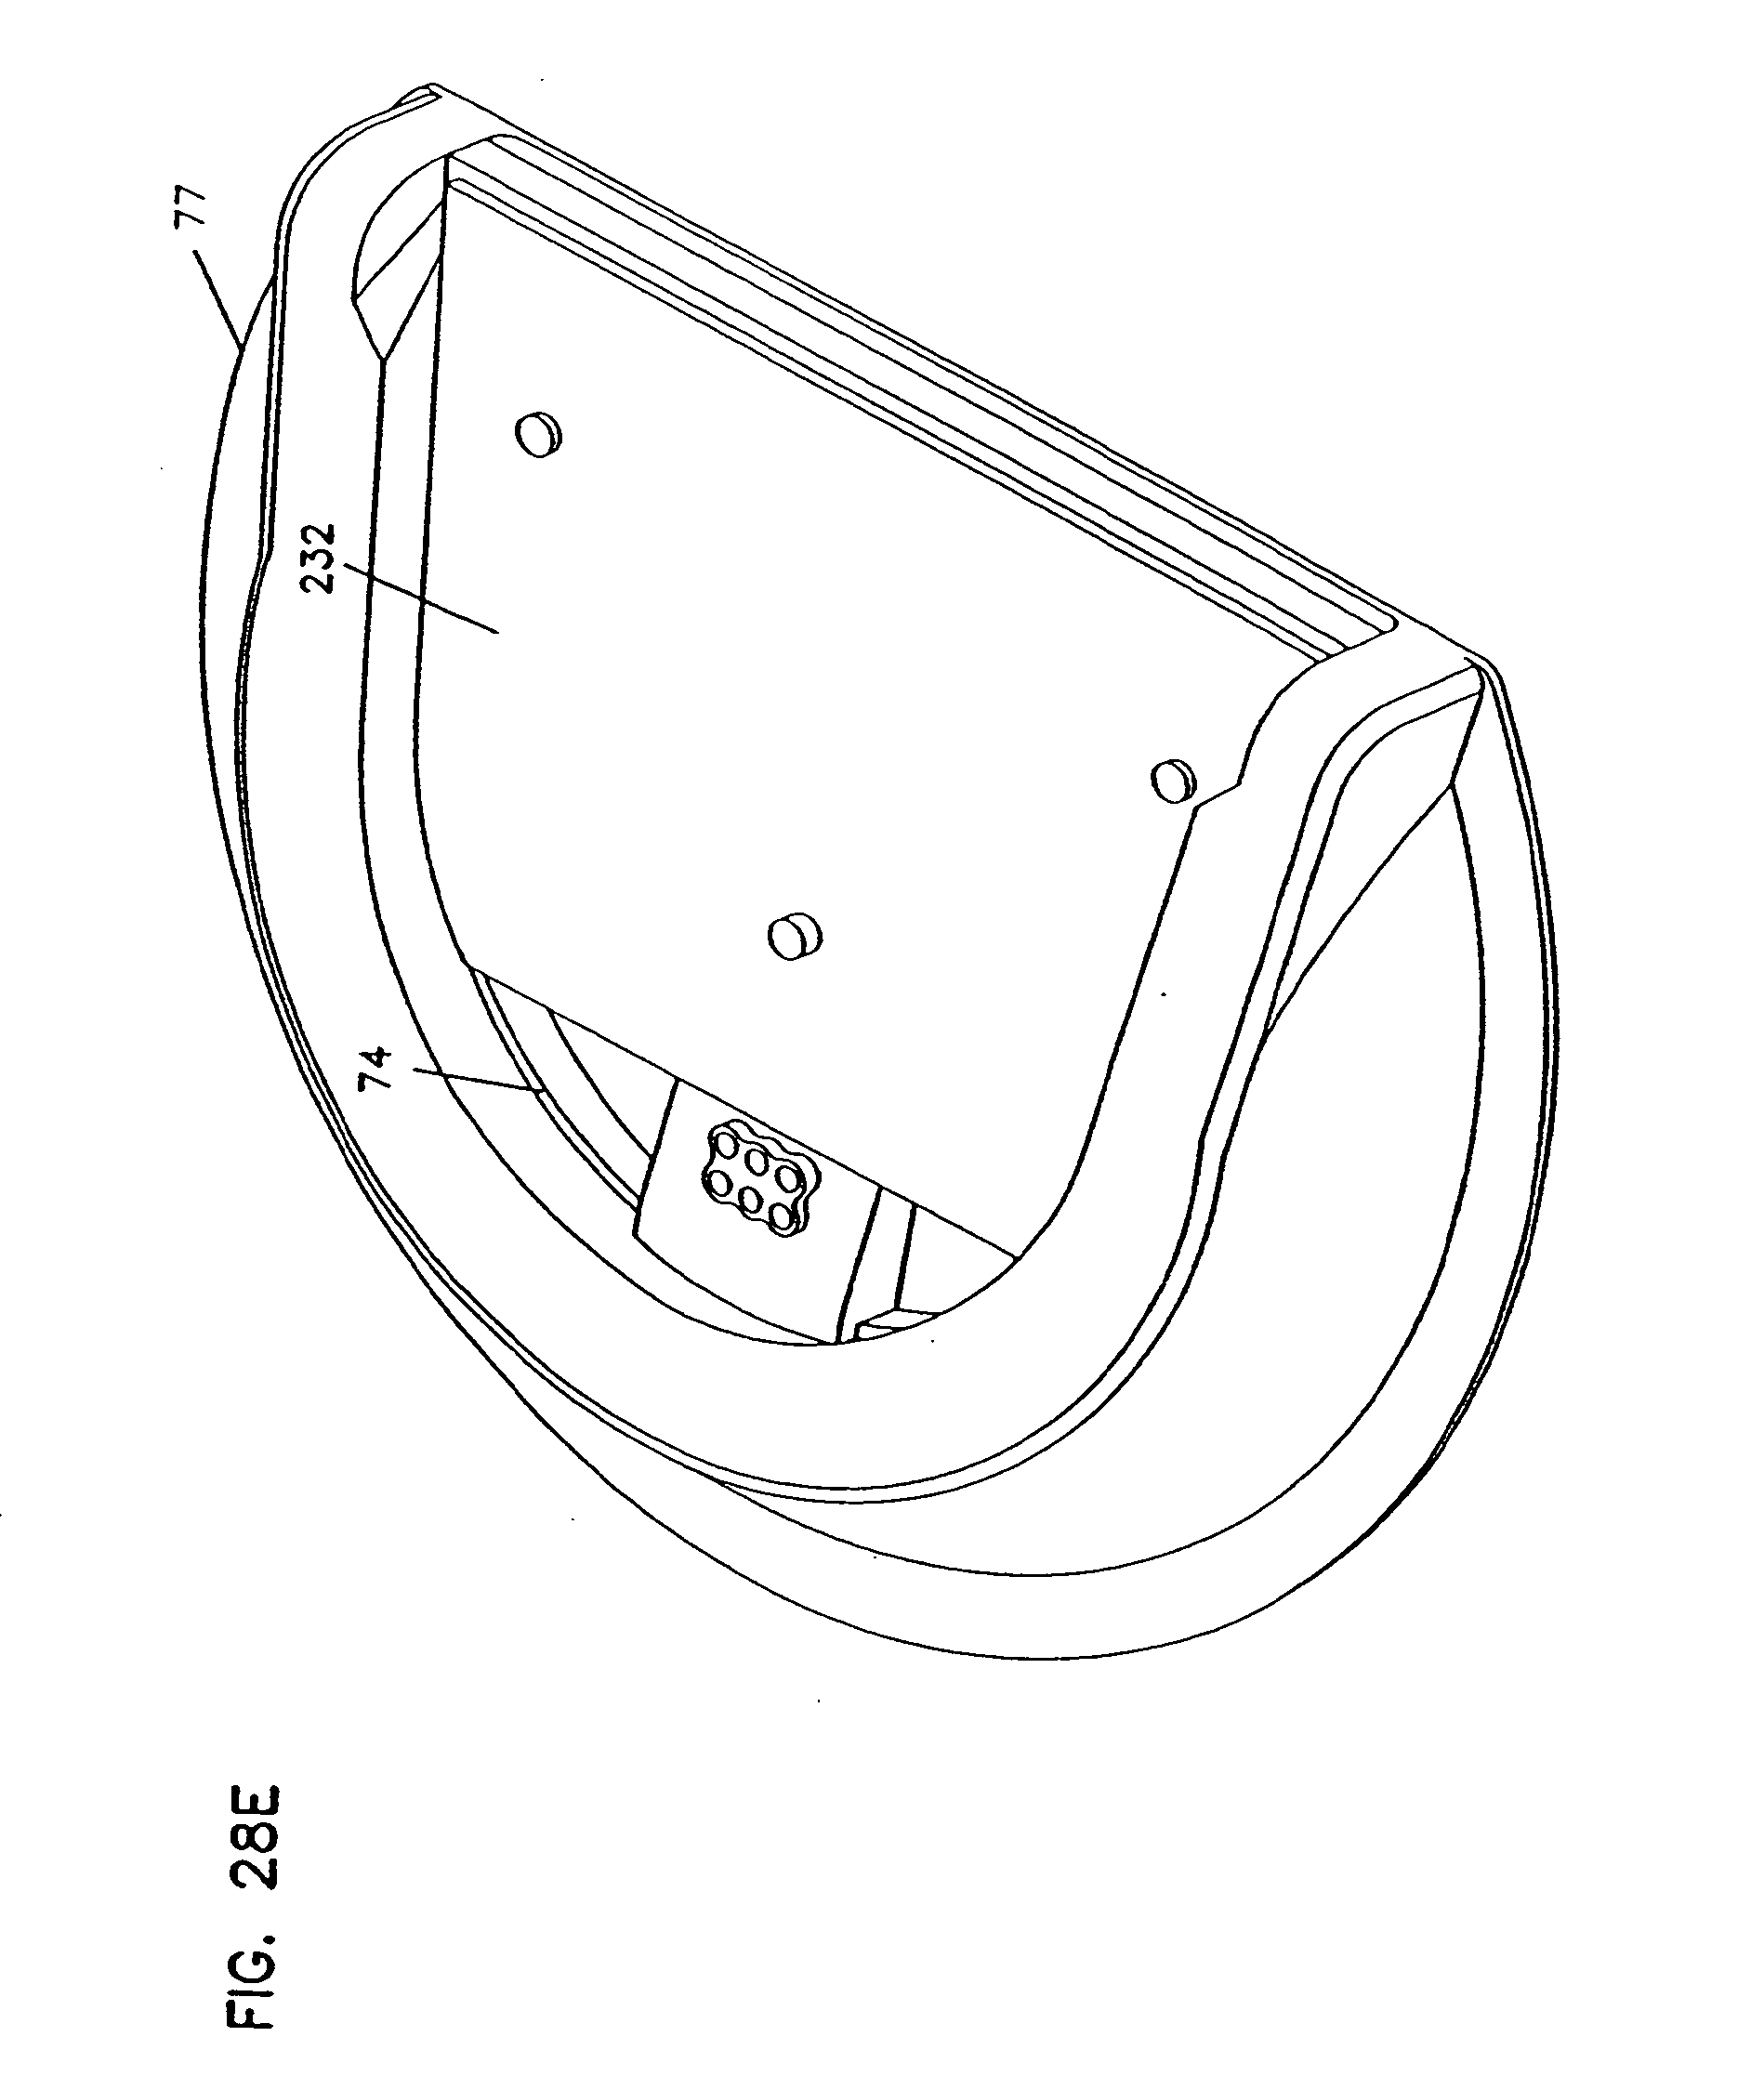 Us20090227941a1 analyte monitoring device and methods of use patents